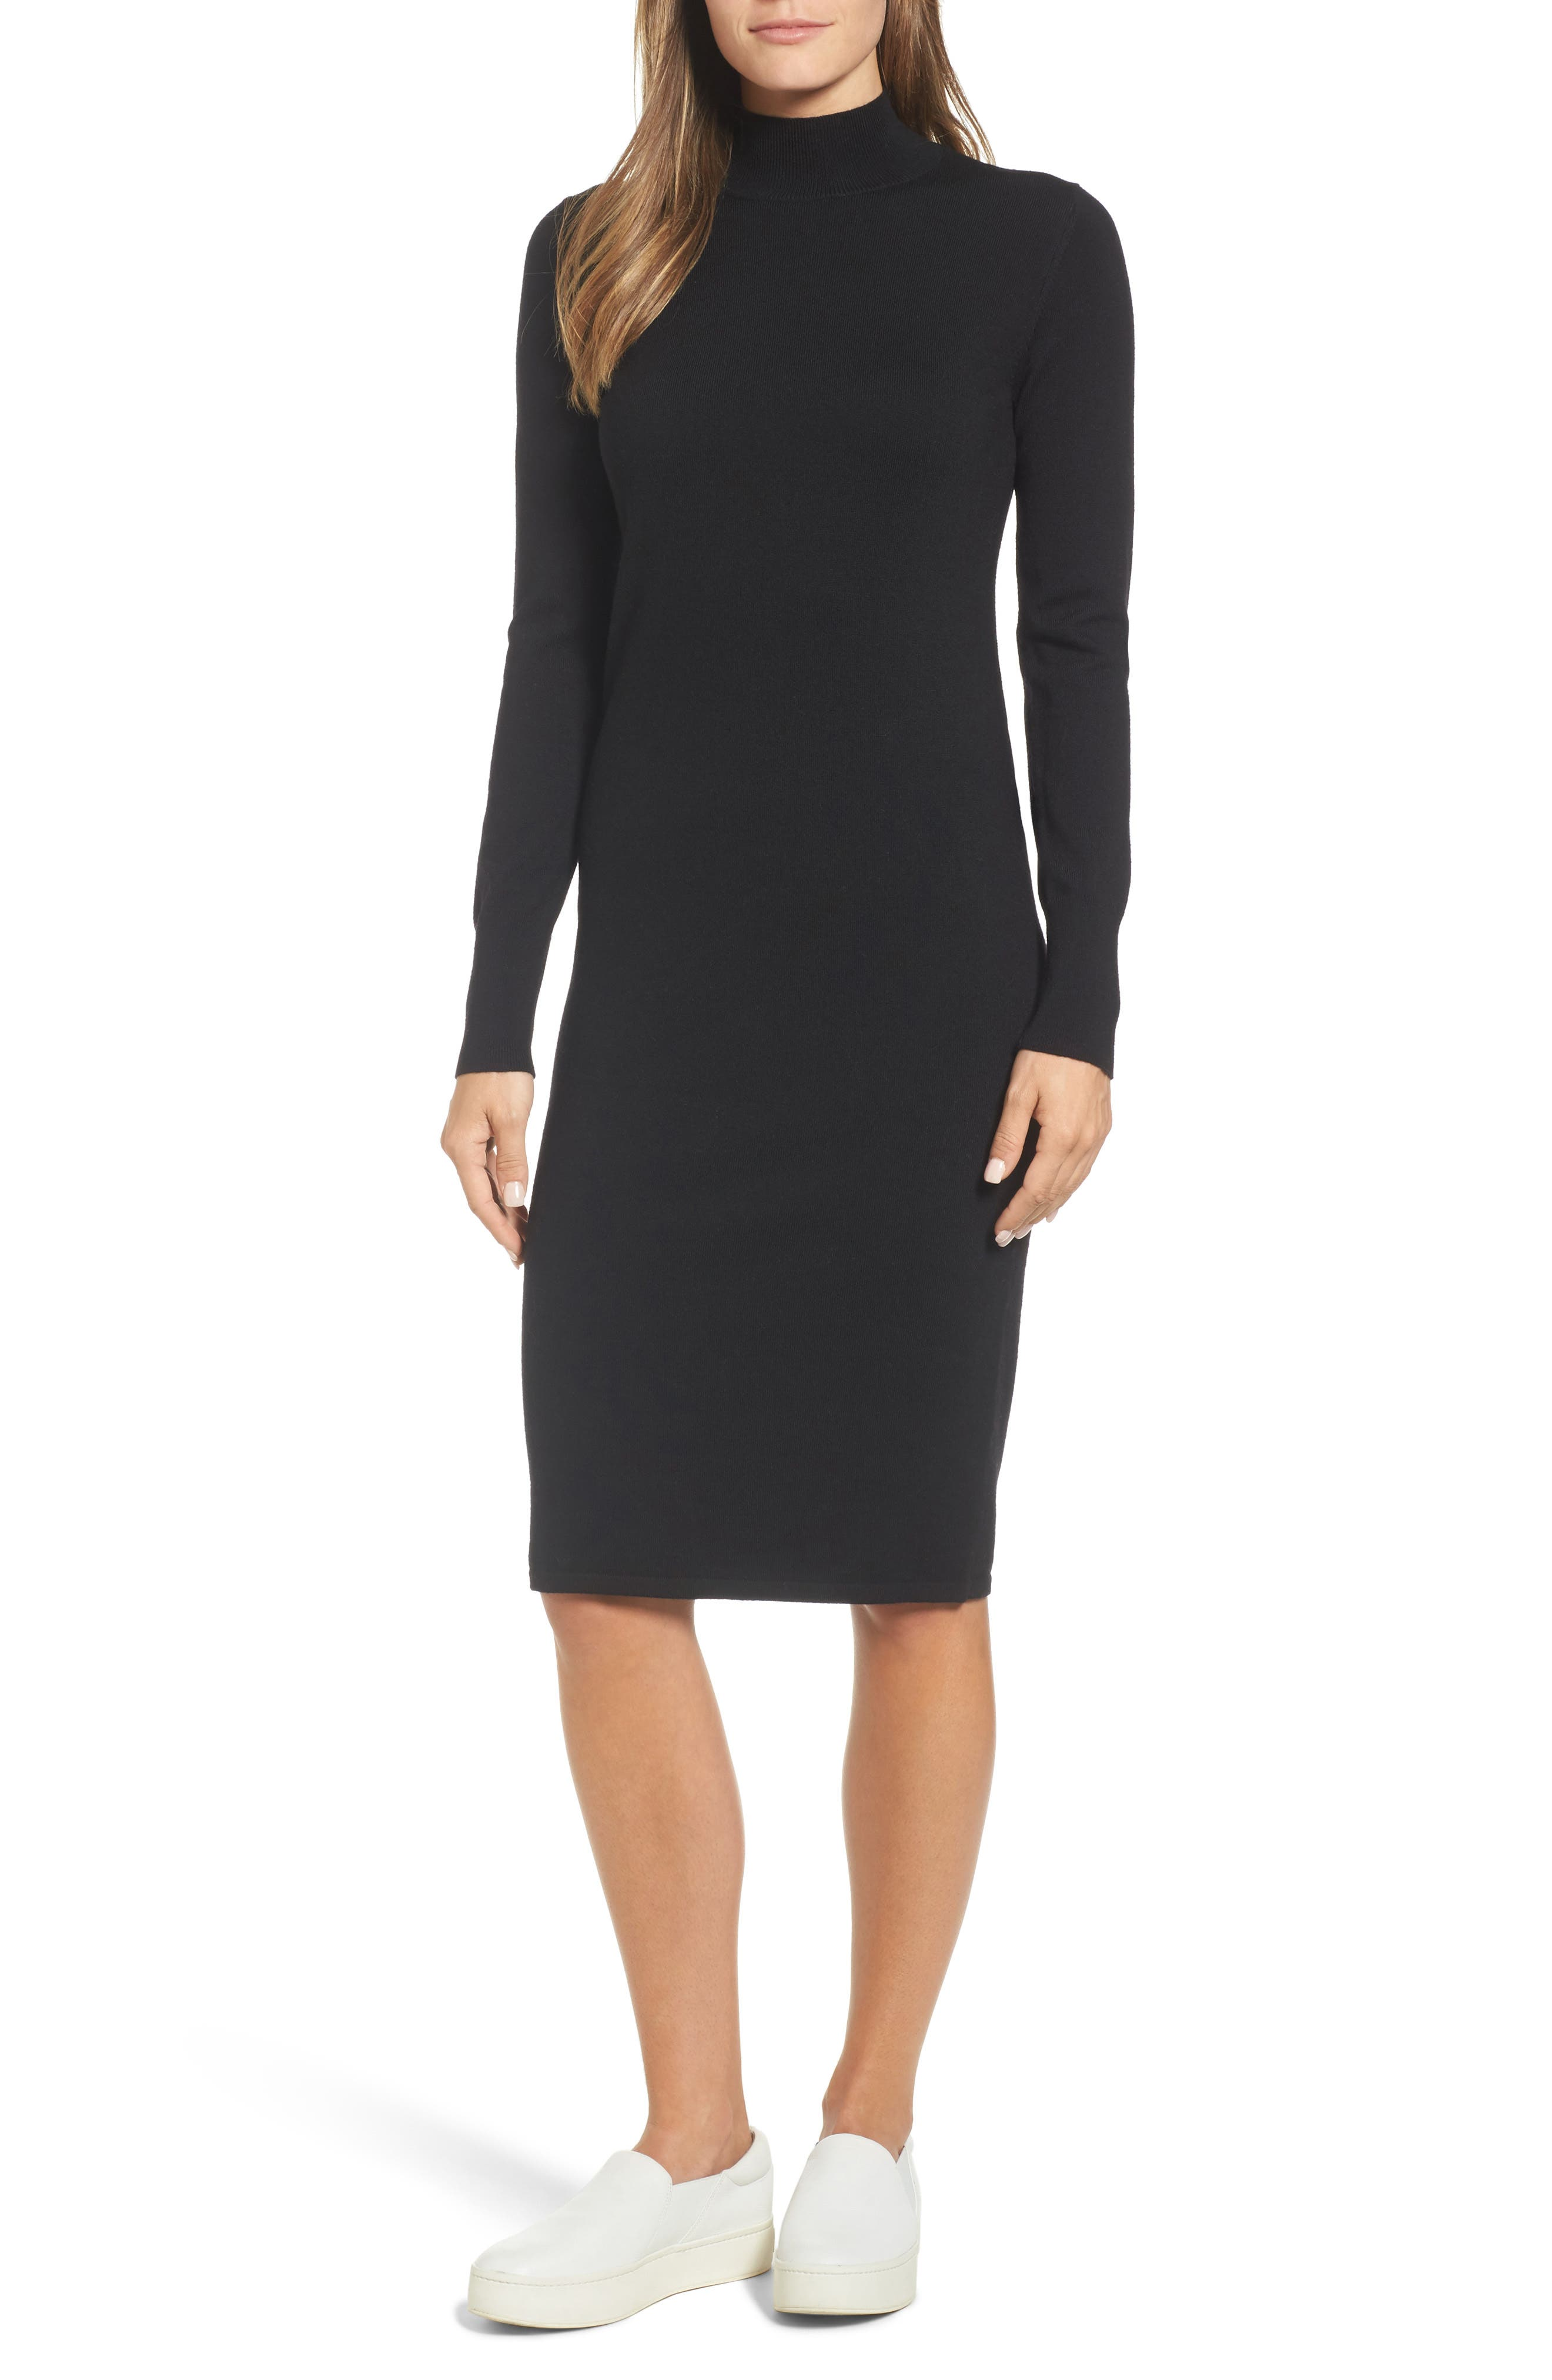 Nordstrom Signature Italian Merino Wool Sweater Dress